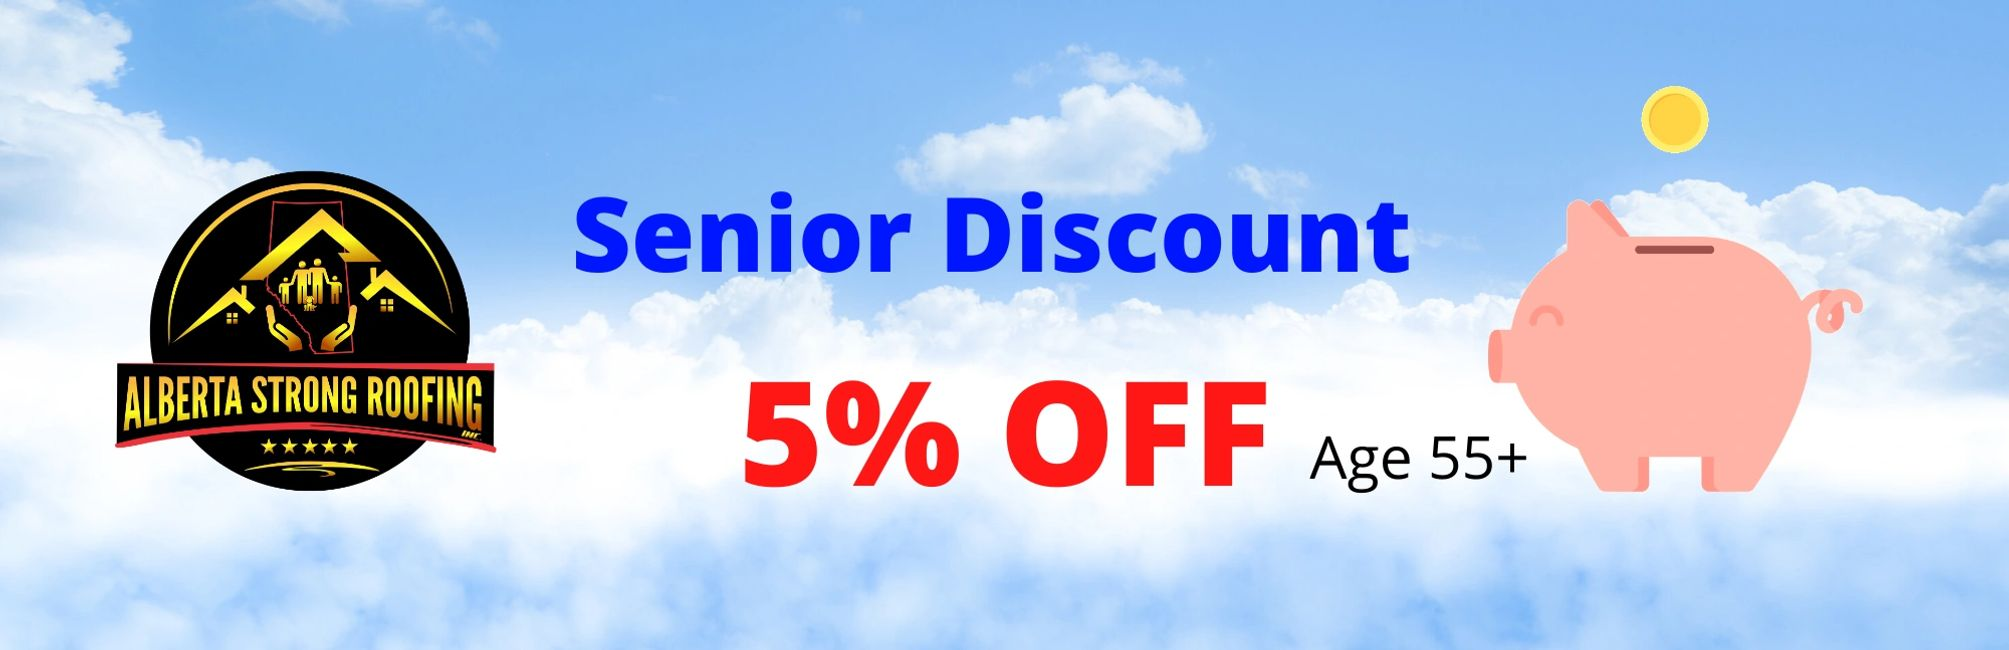 Alberta Strong Roofing Senior Discount 5% Off Now age 55+